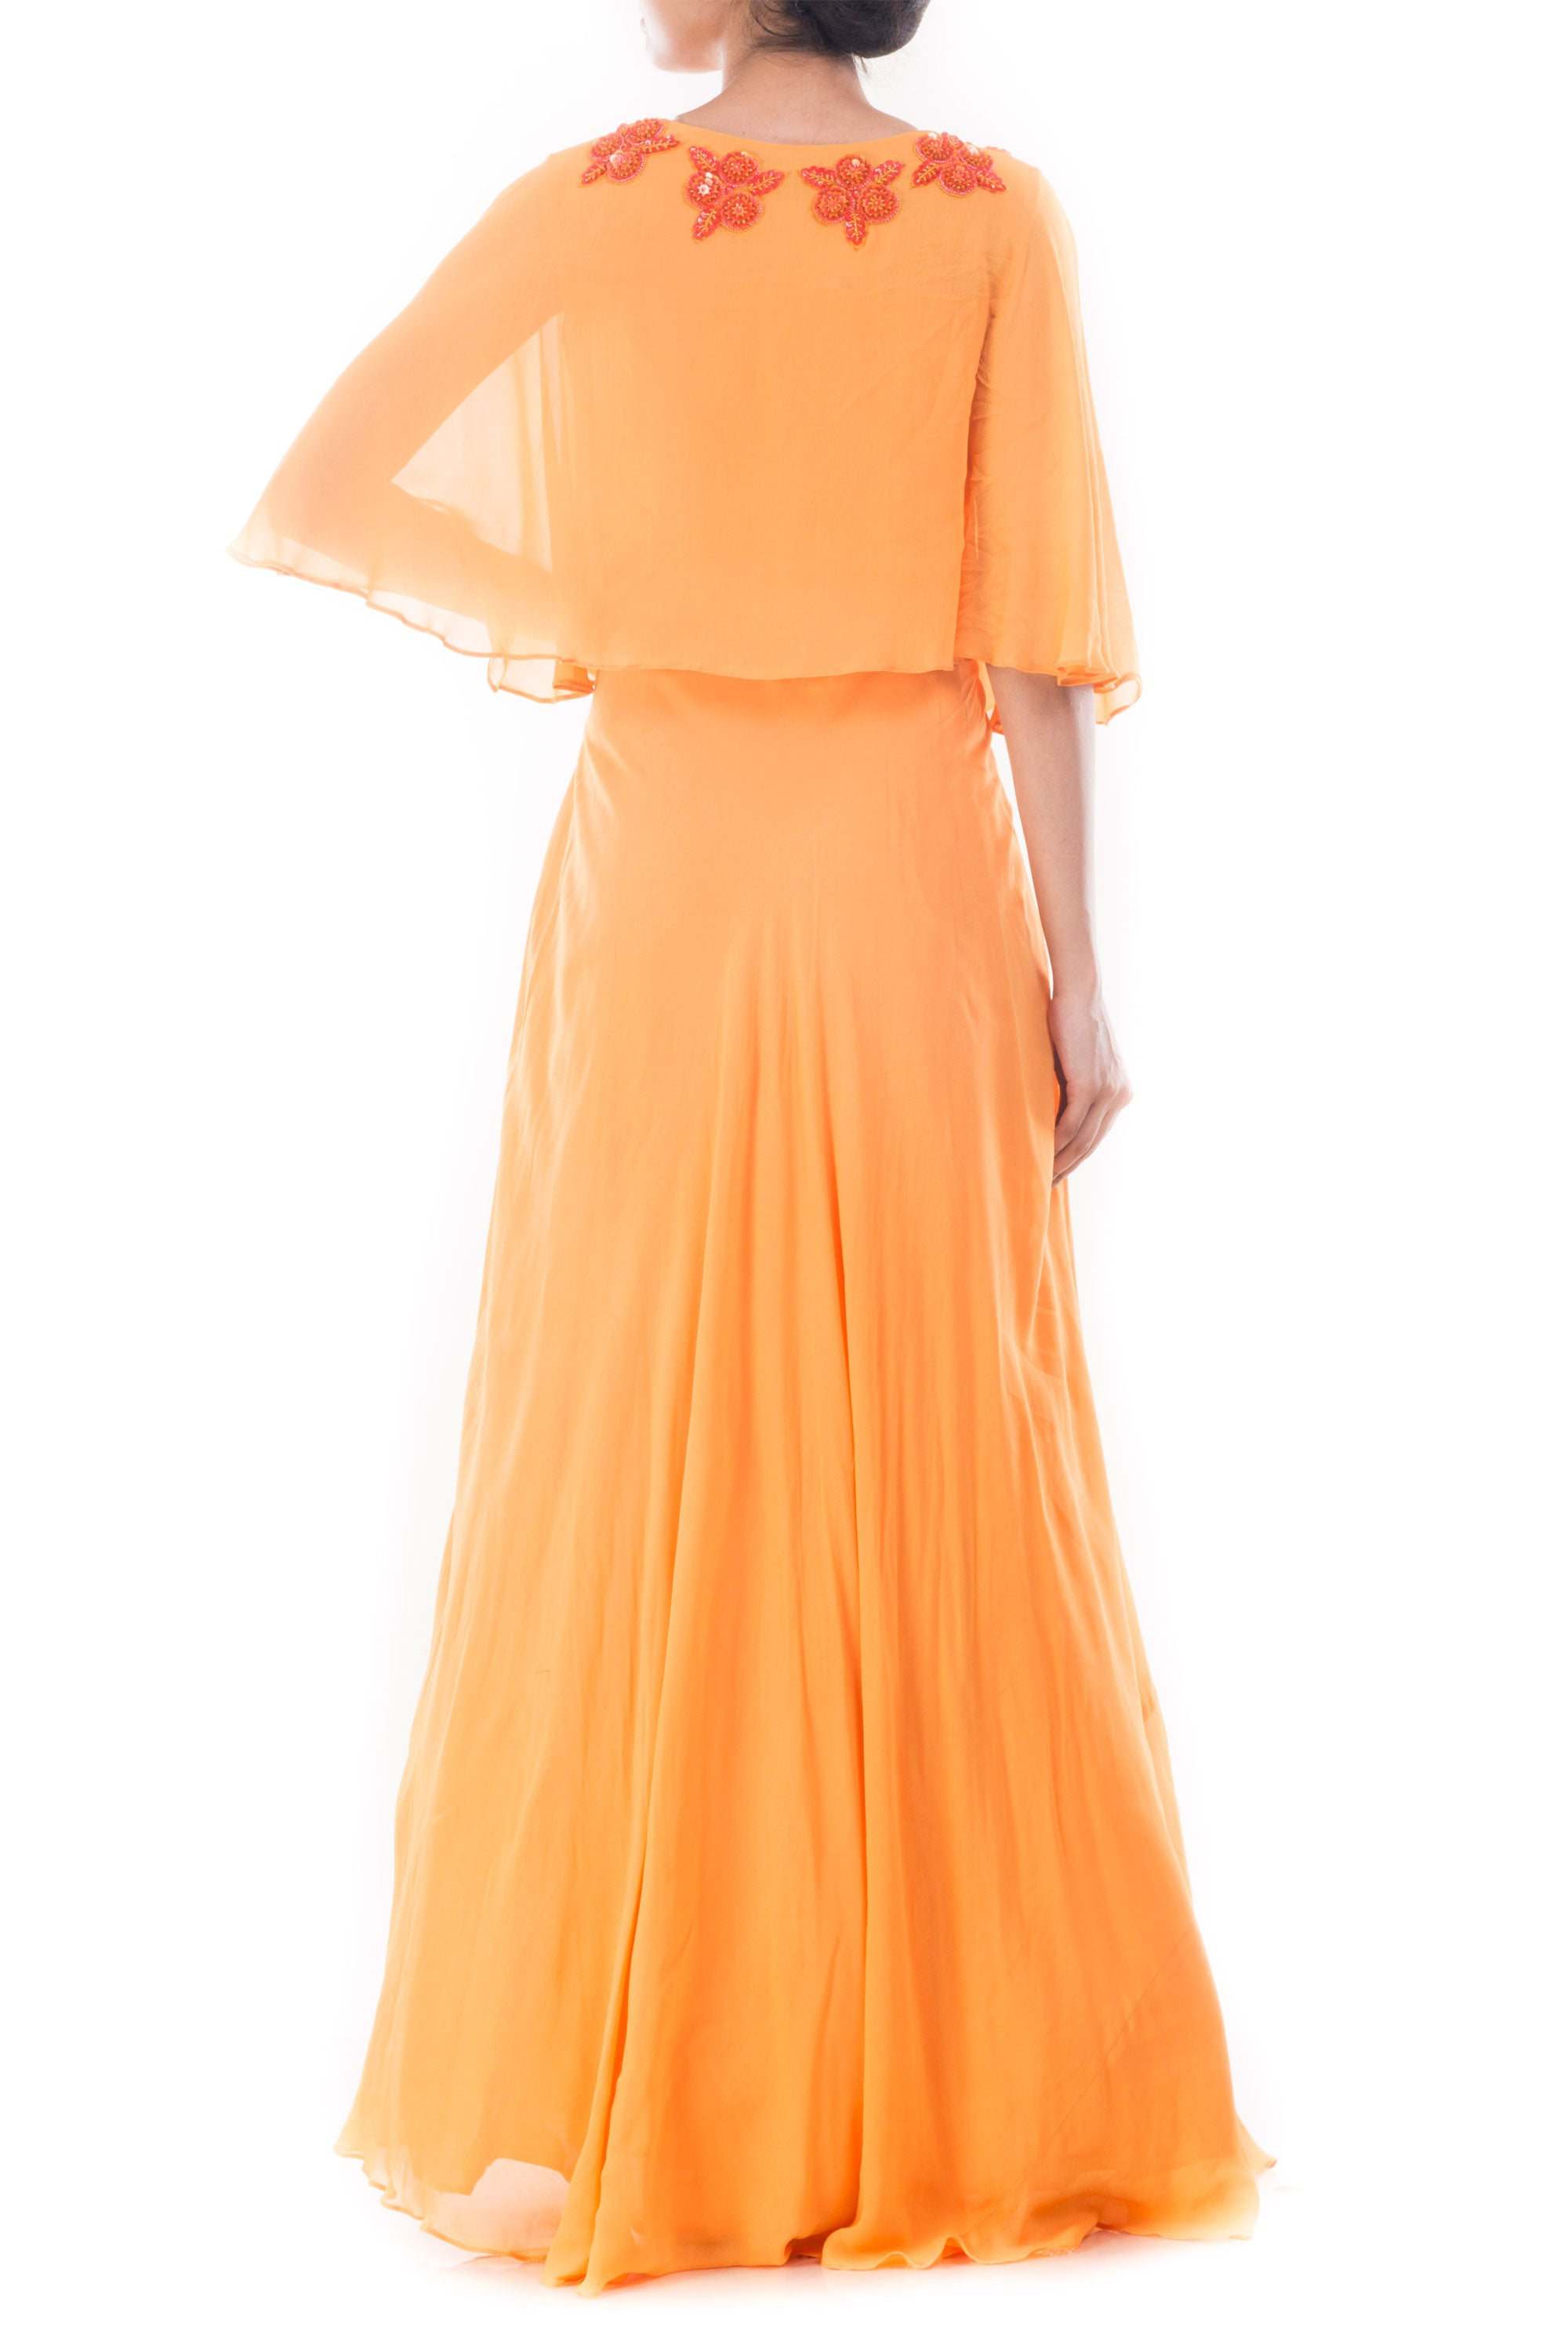 Coral Yellow Flare Jacket Gown Back